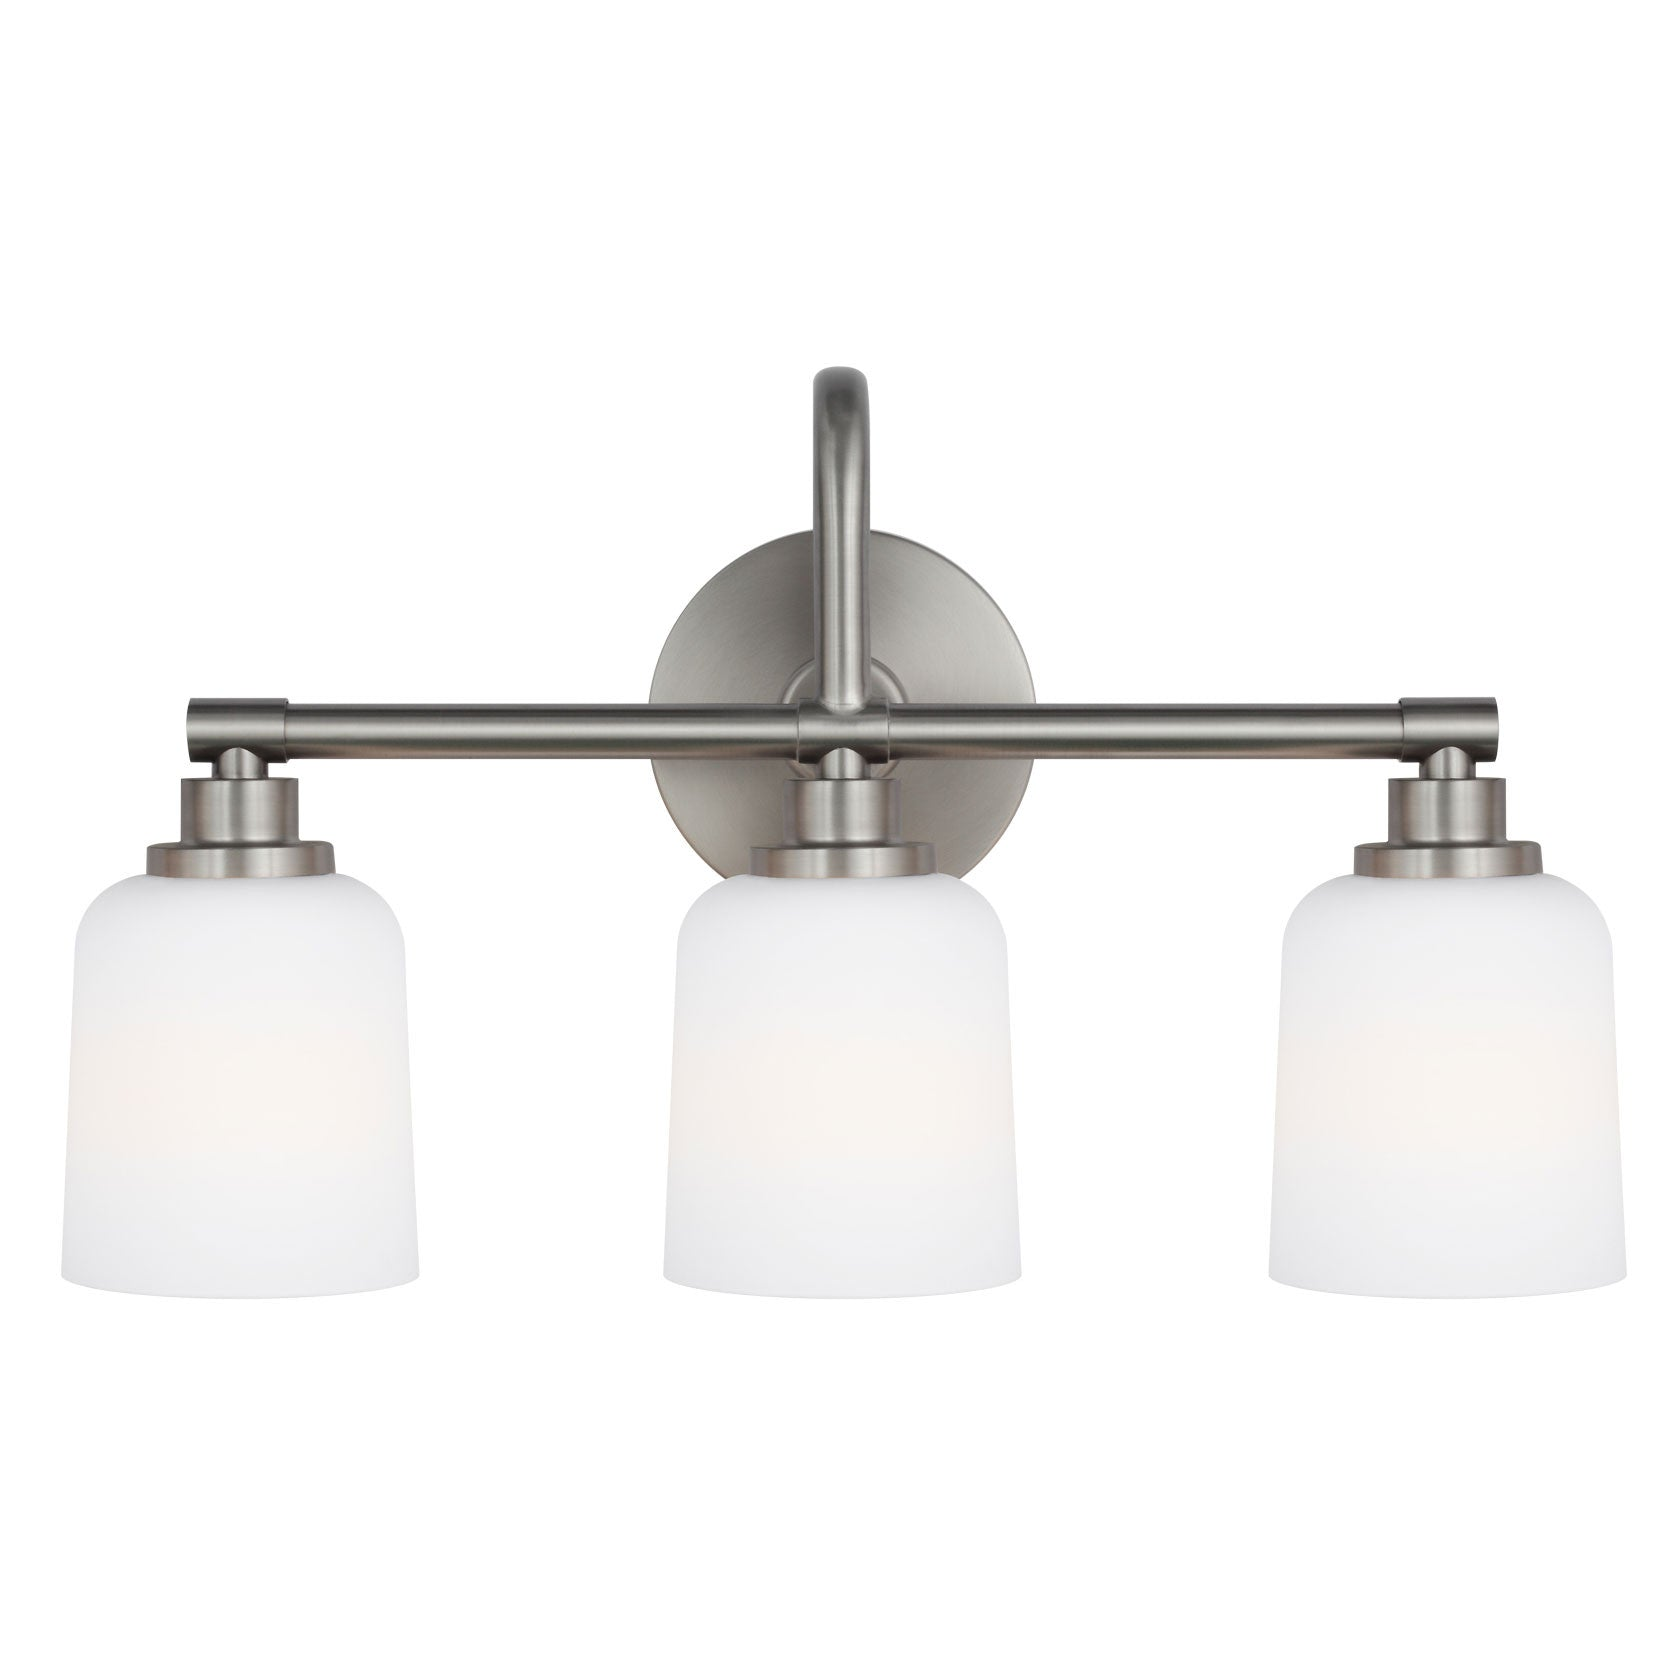 Feiss 3 Light Reiser Vanity Light in Satin Nickel VS23903SN